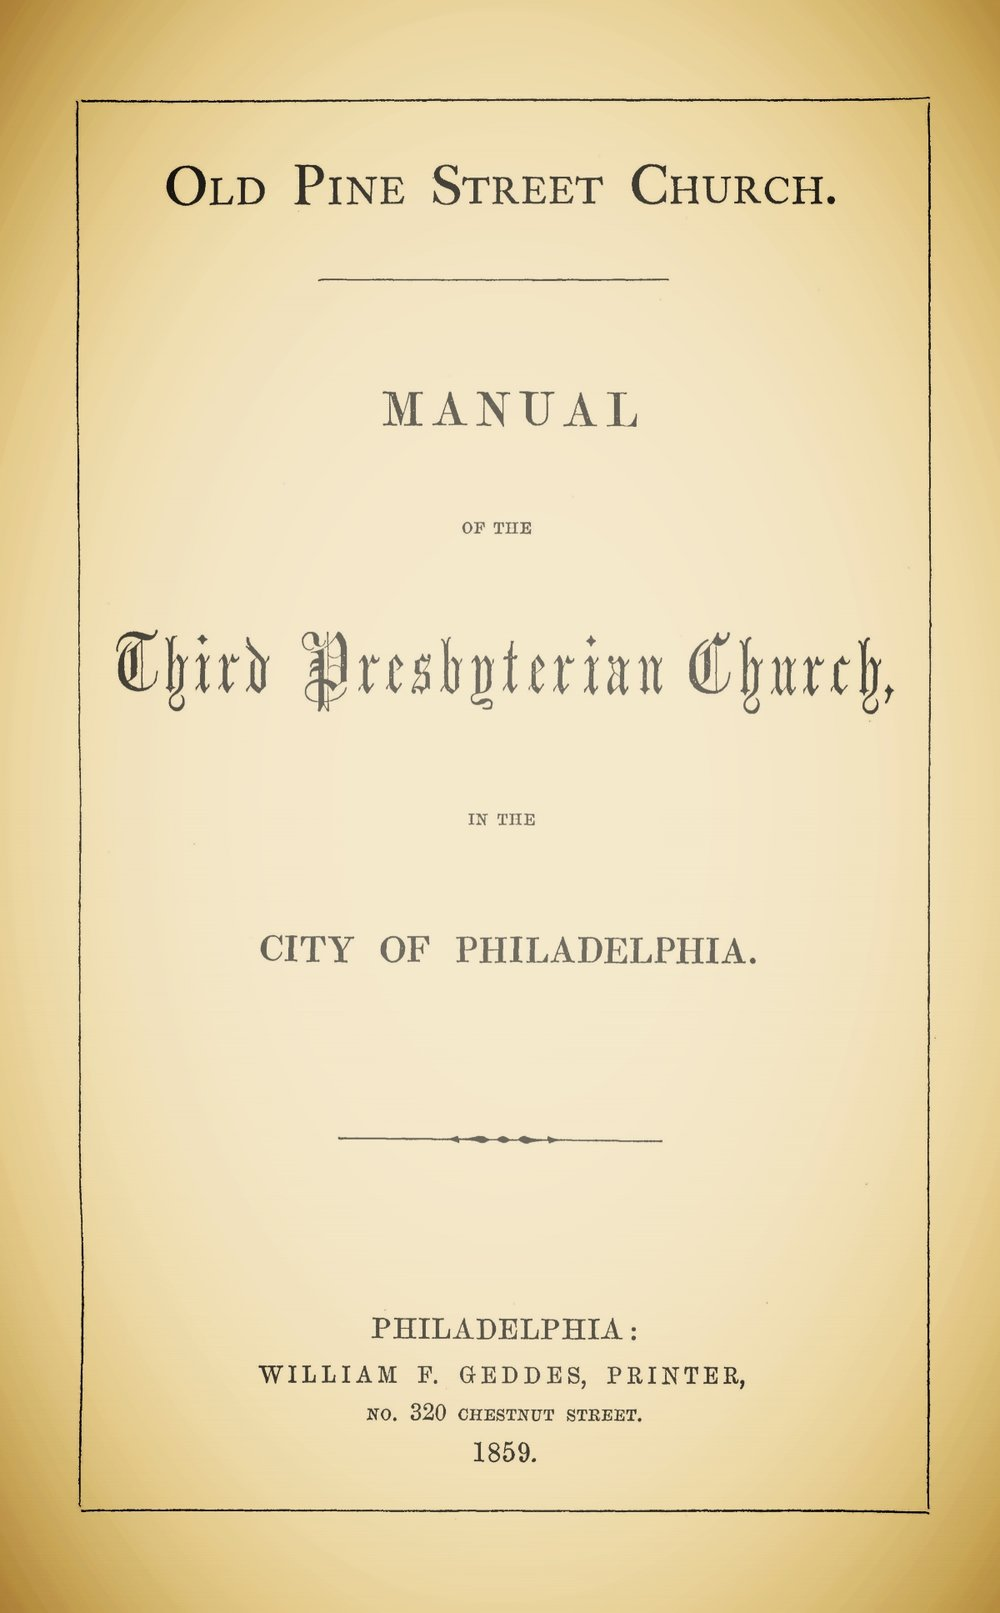 Brainerd, Thomas, Old Pine Street Church Manual Title Page.jpg